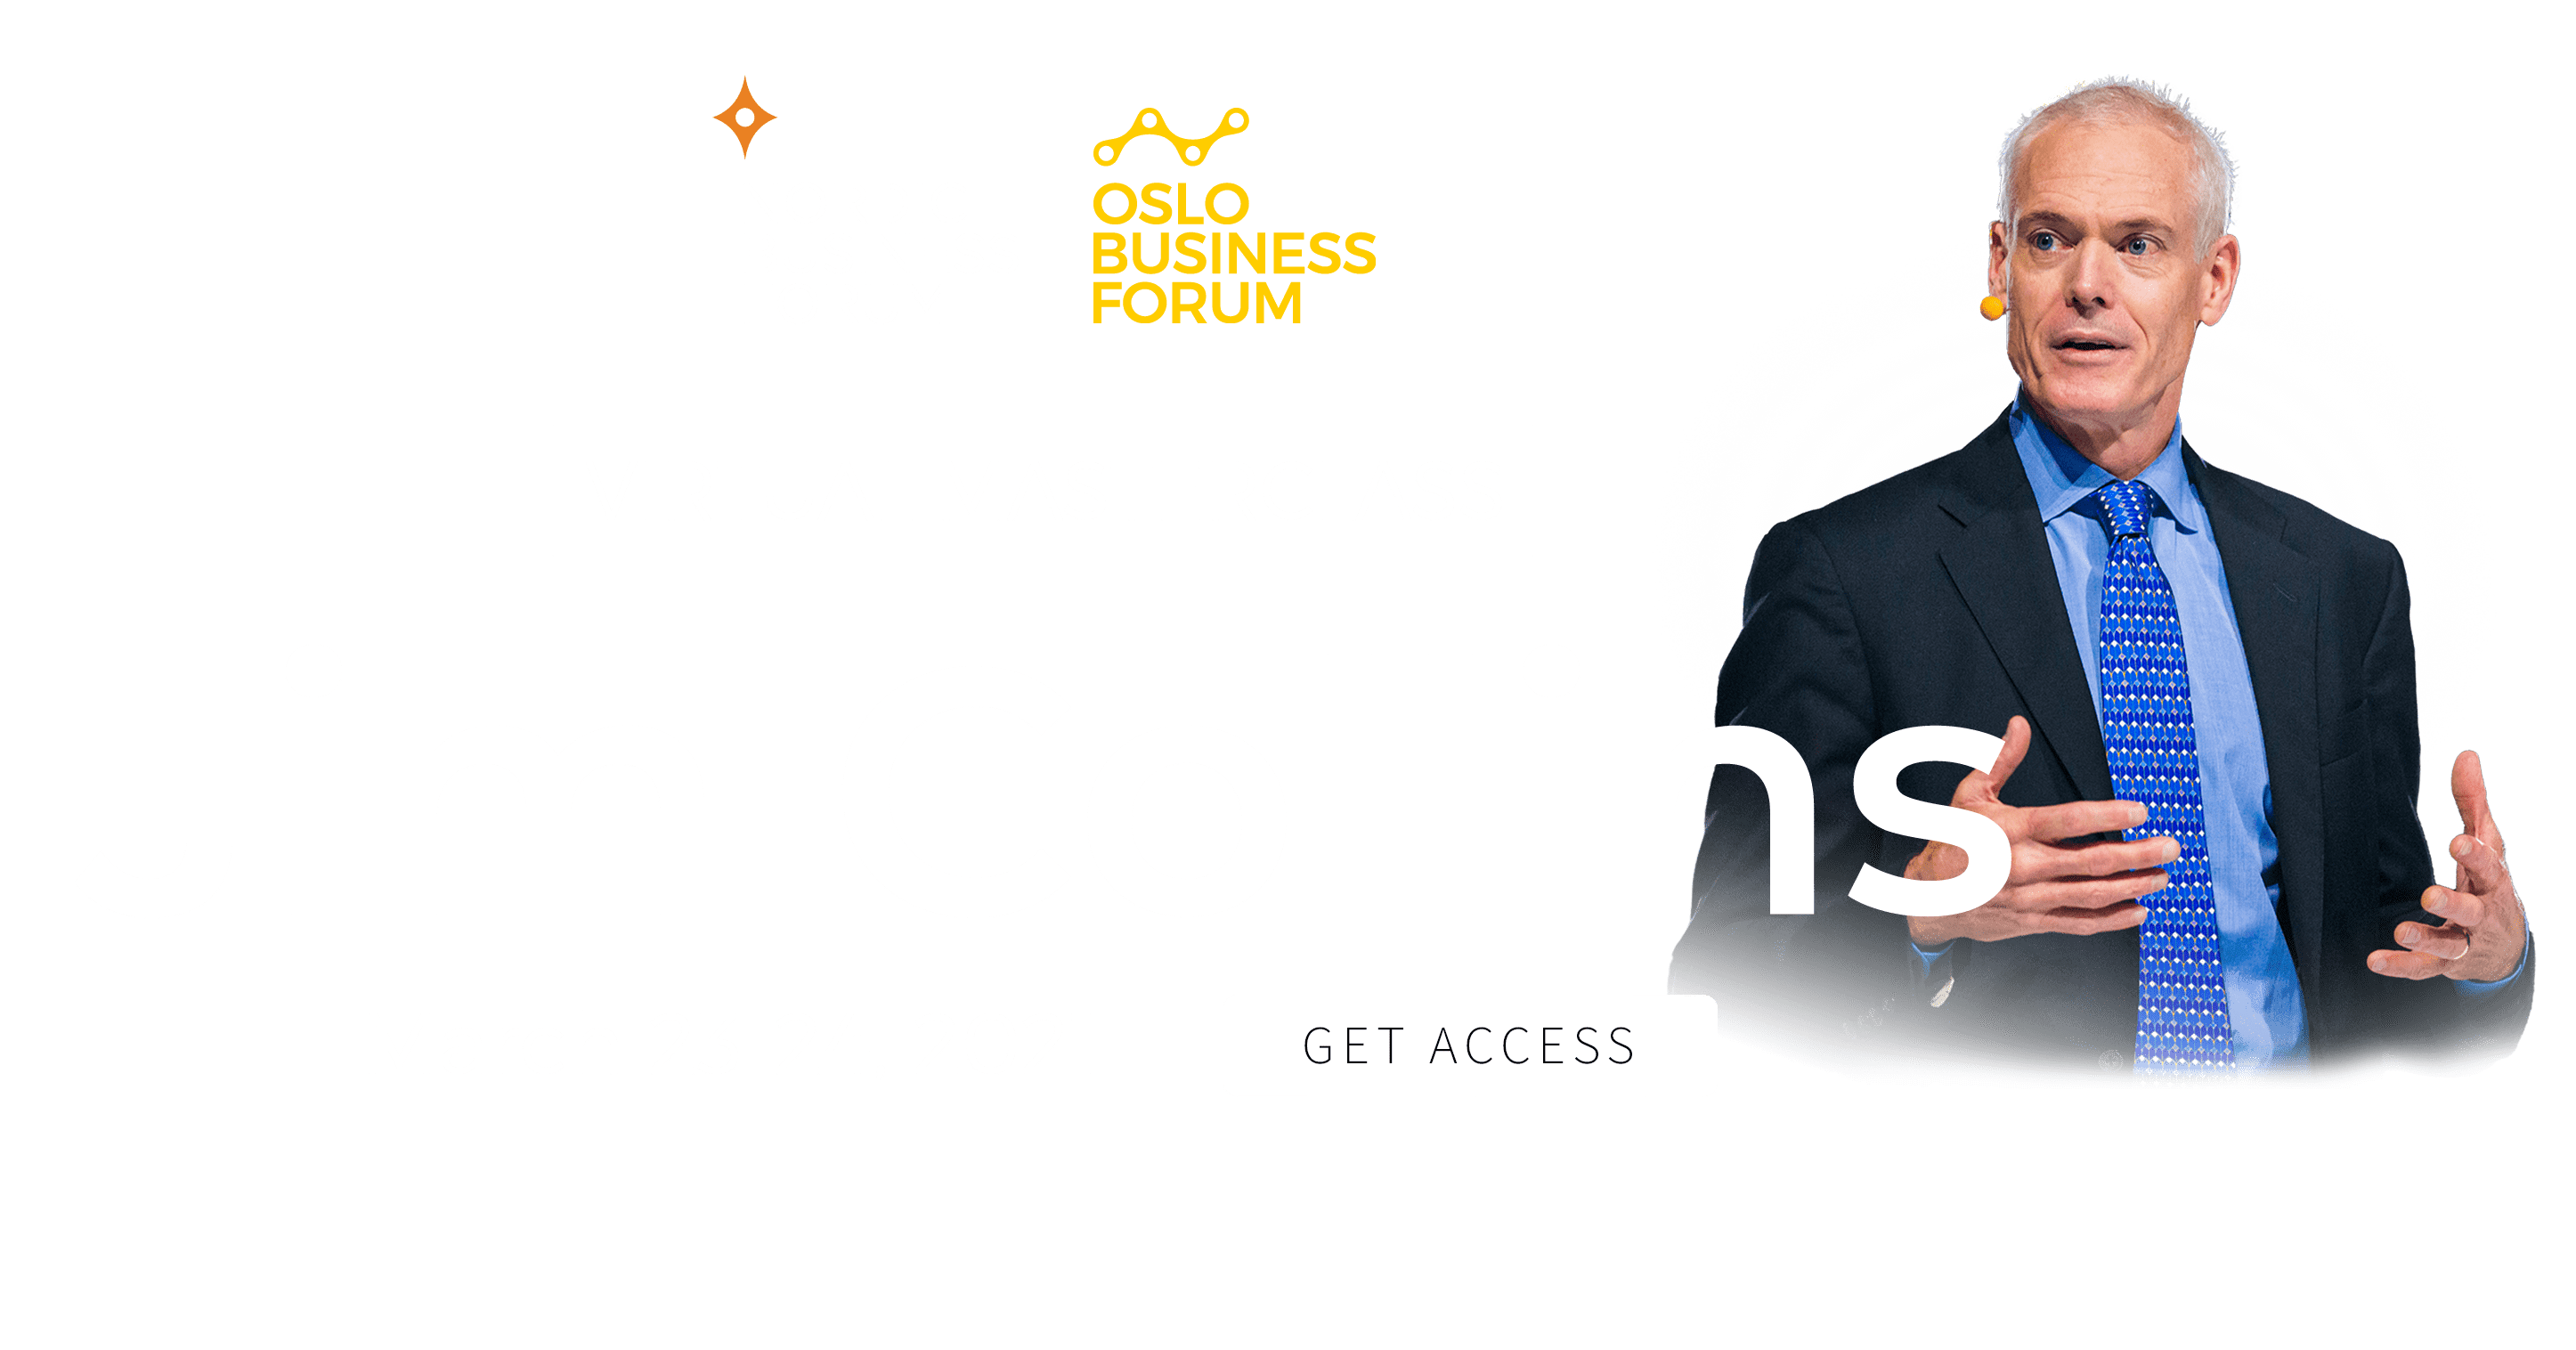 Virtual Masterclass with Jim Collins